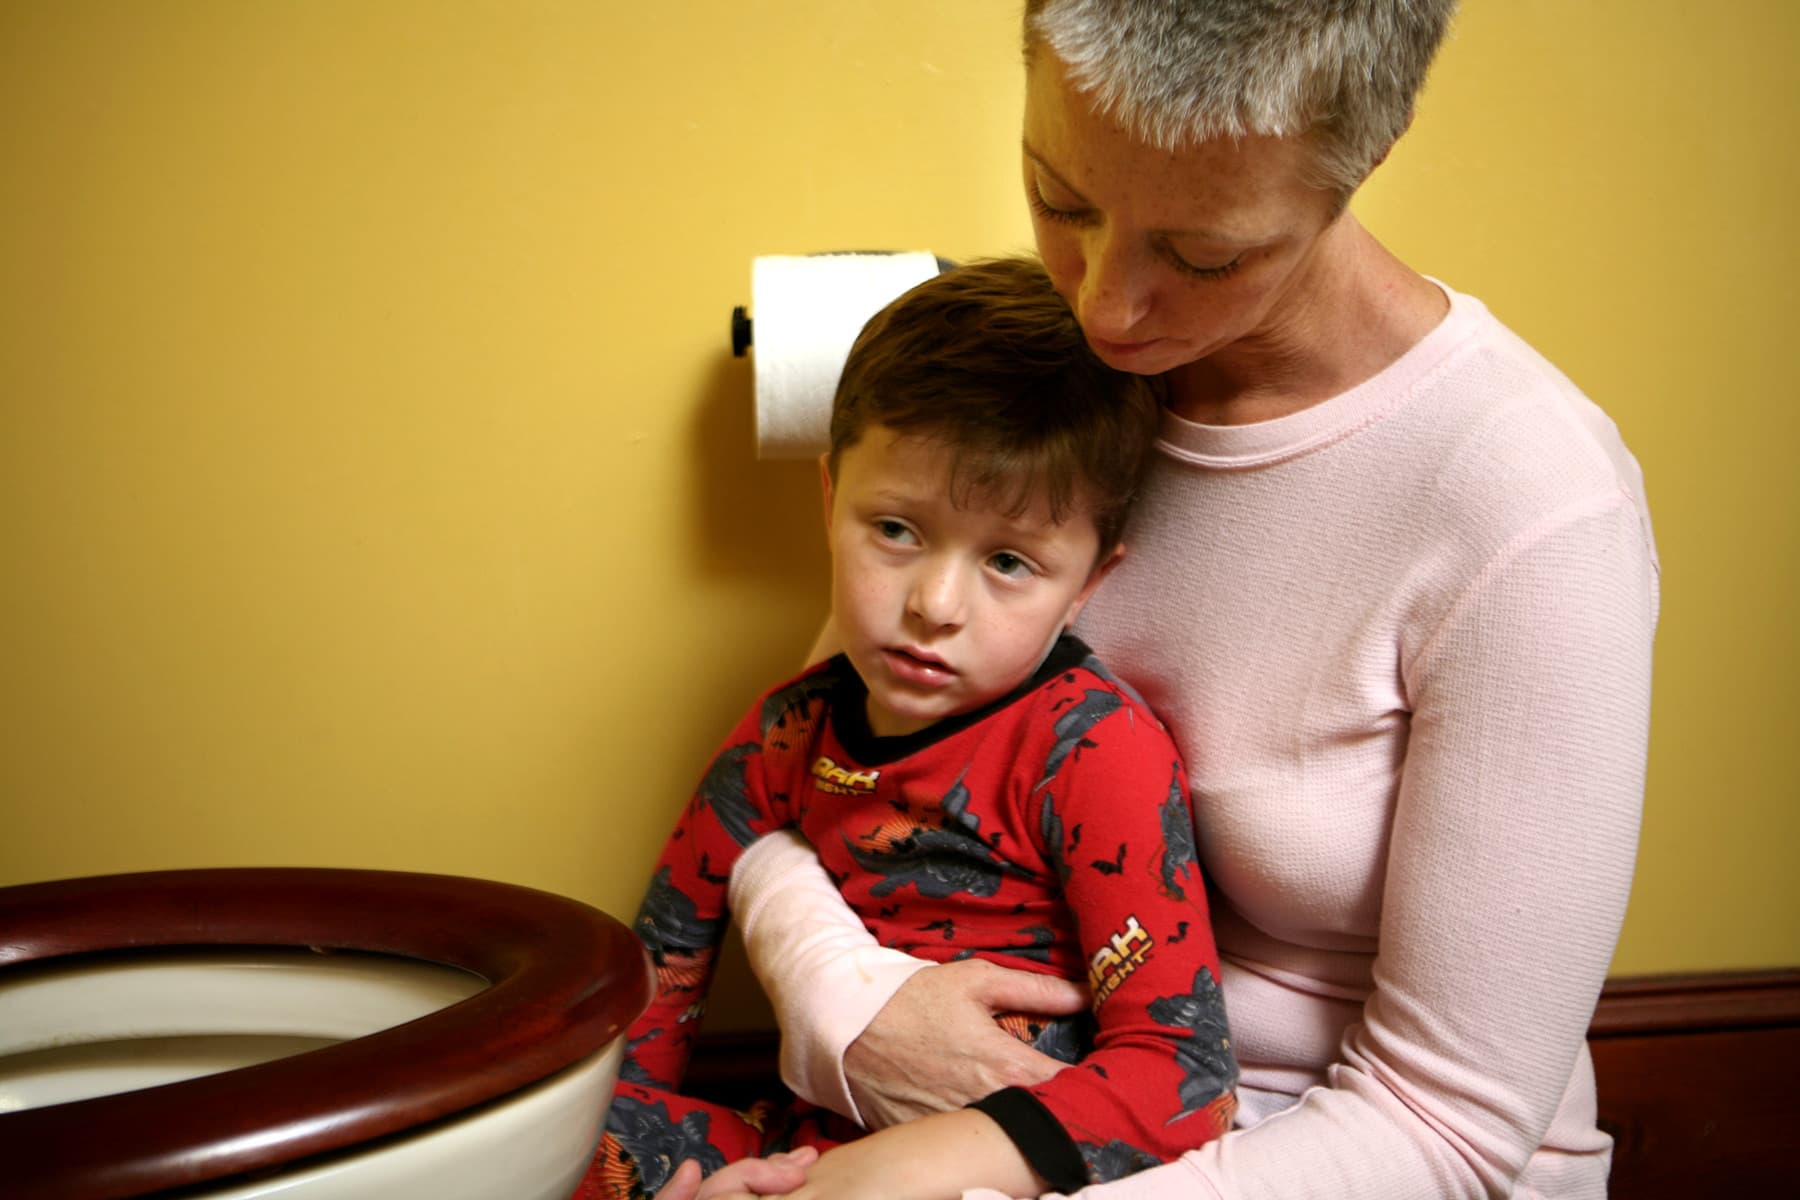 Kids Highly Likely to Transmit COVID to Others